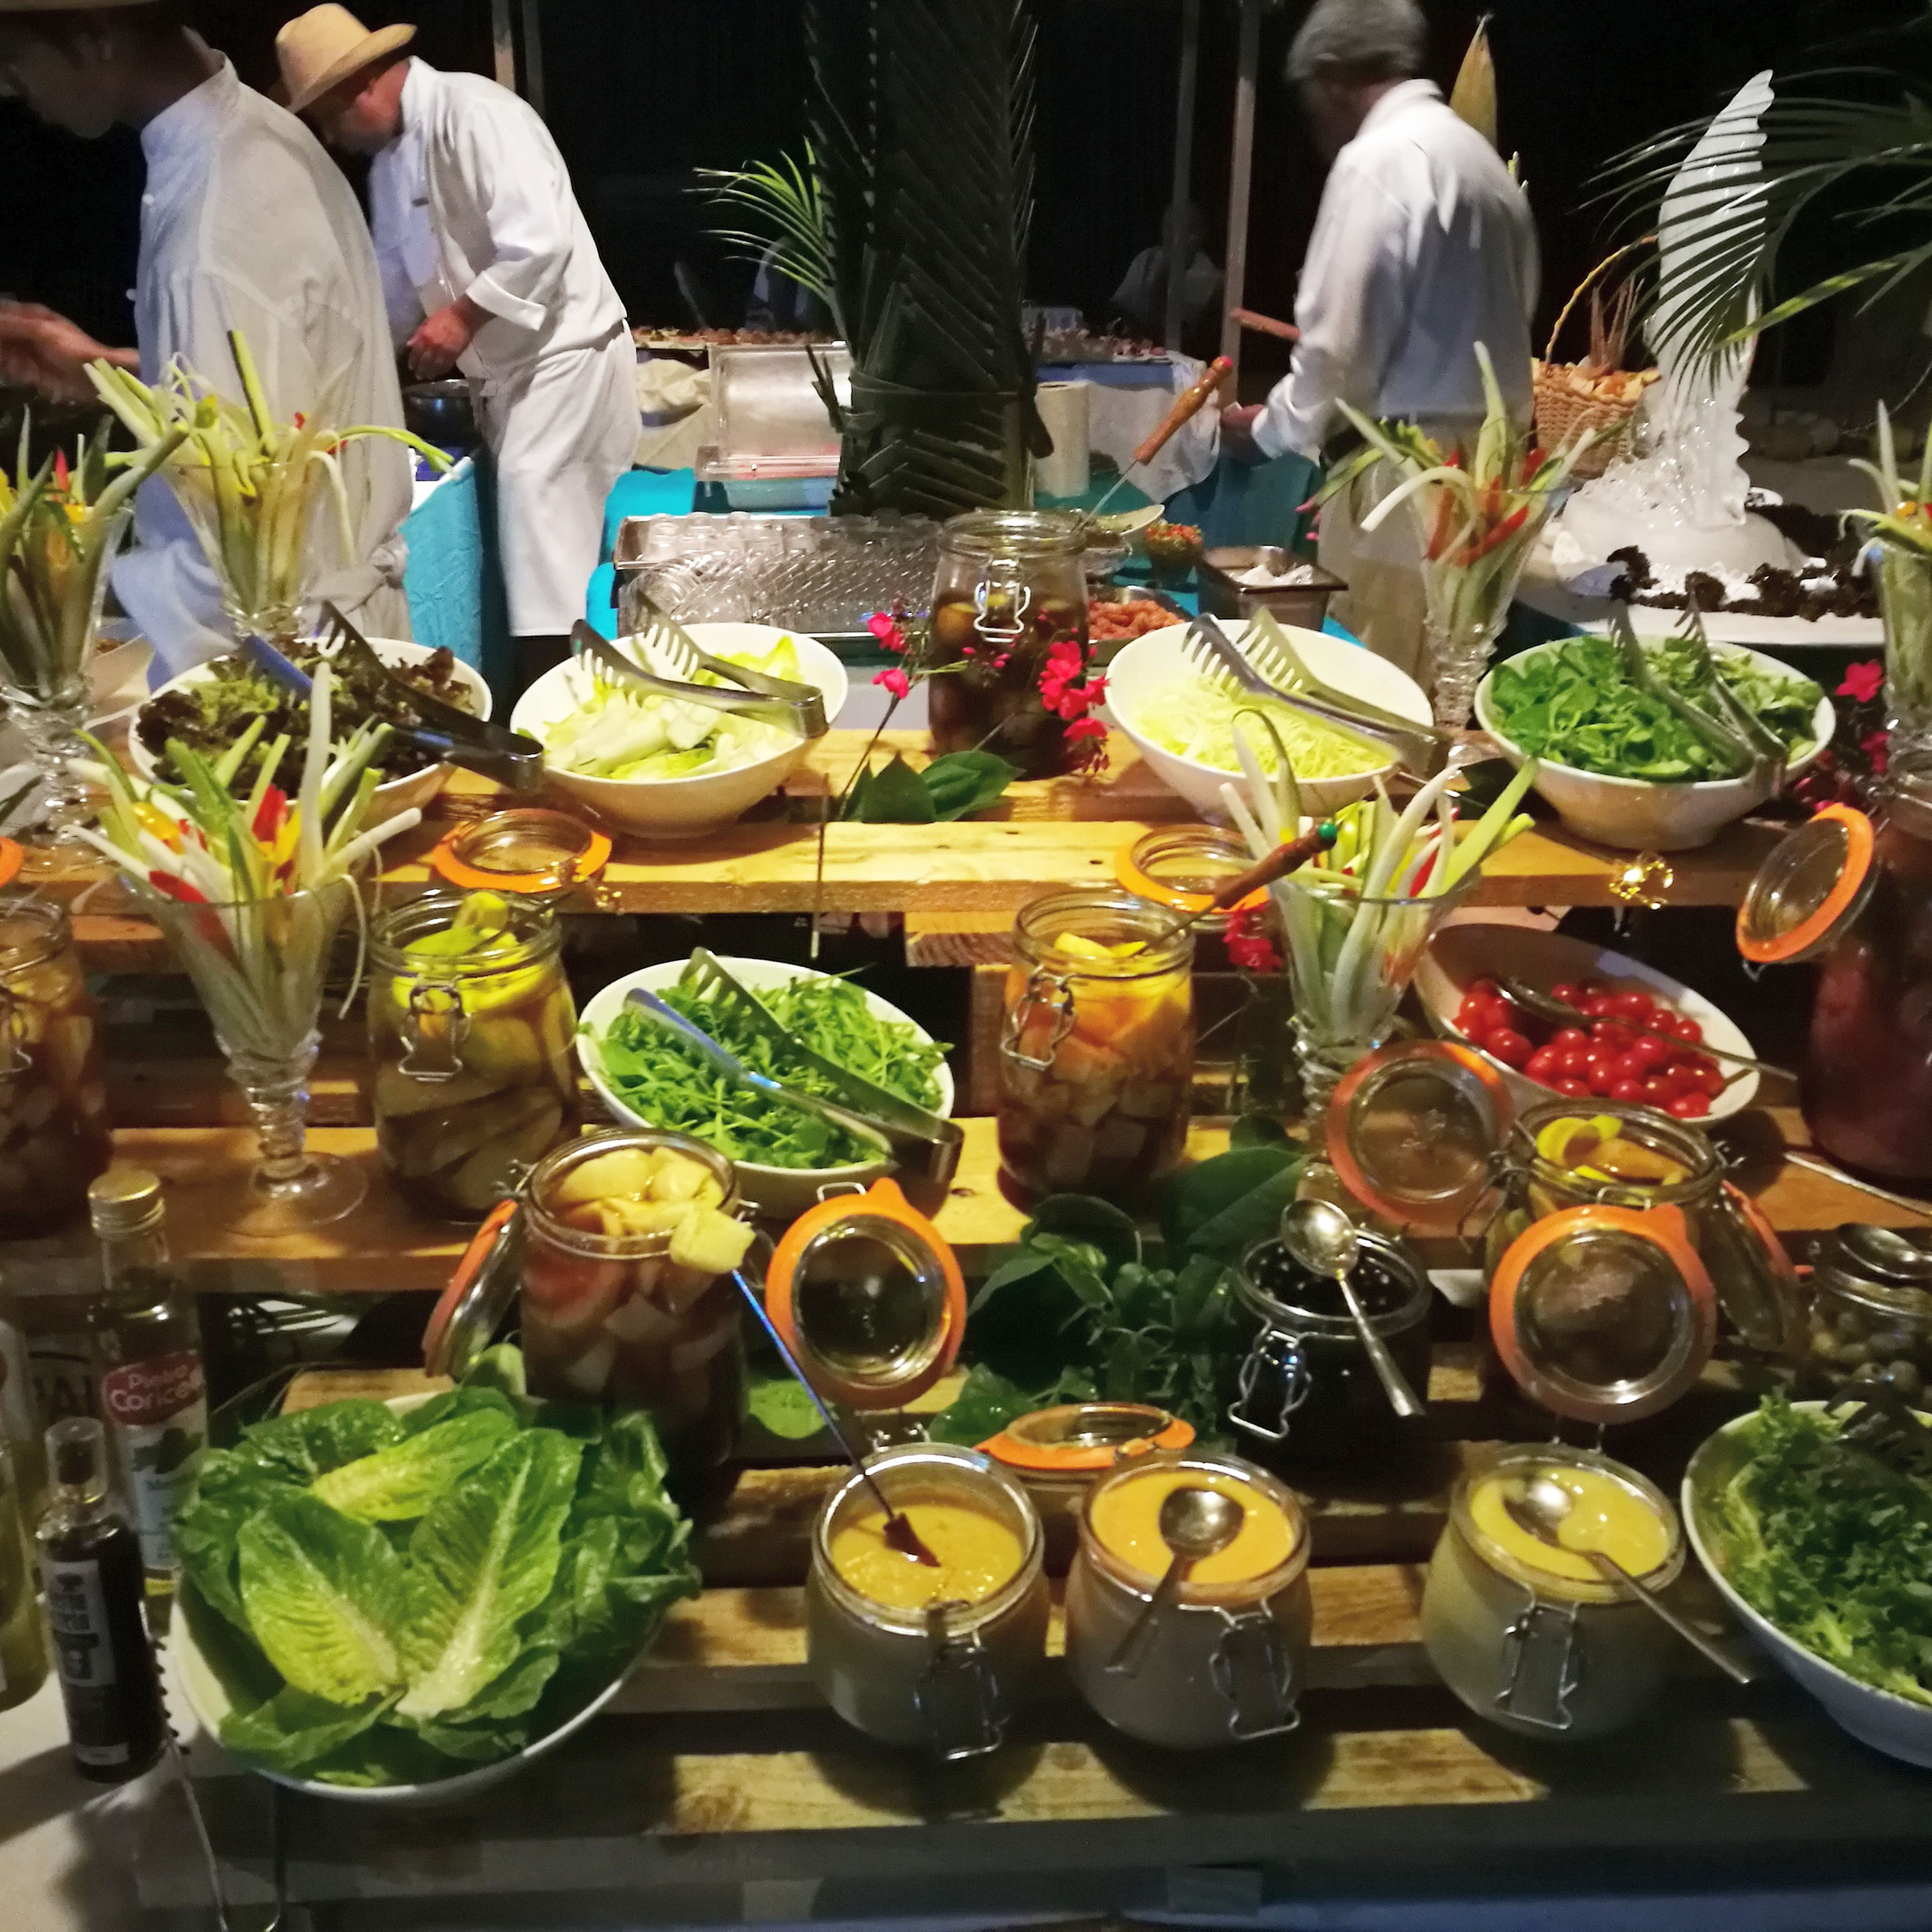 food and drink, only men, lettuce, variation, freshness, healthy eating, food, men, adults only, outdoors, adult, people, day